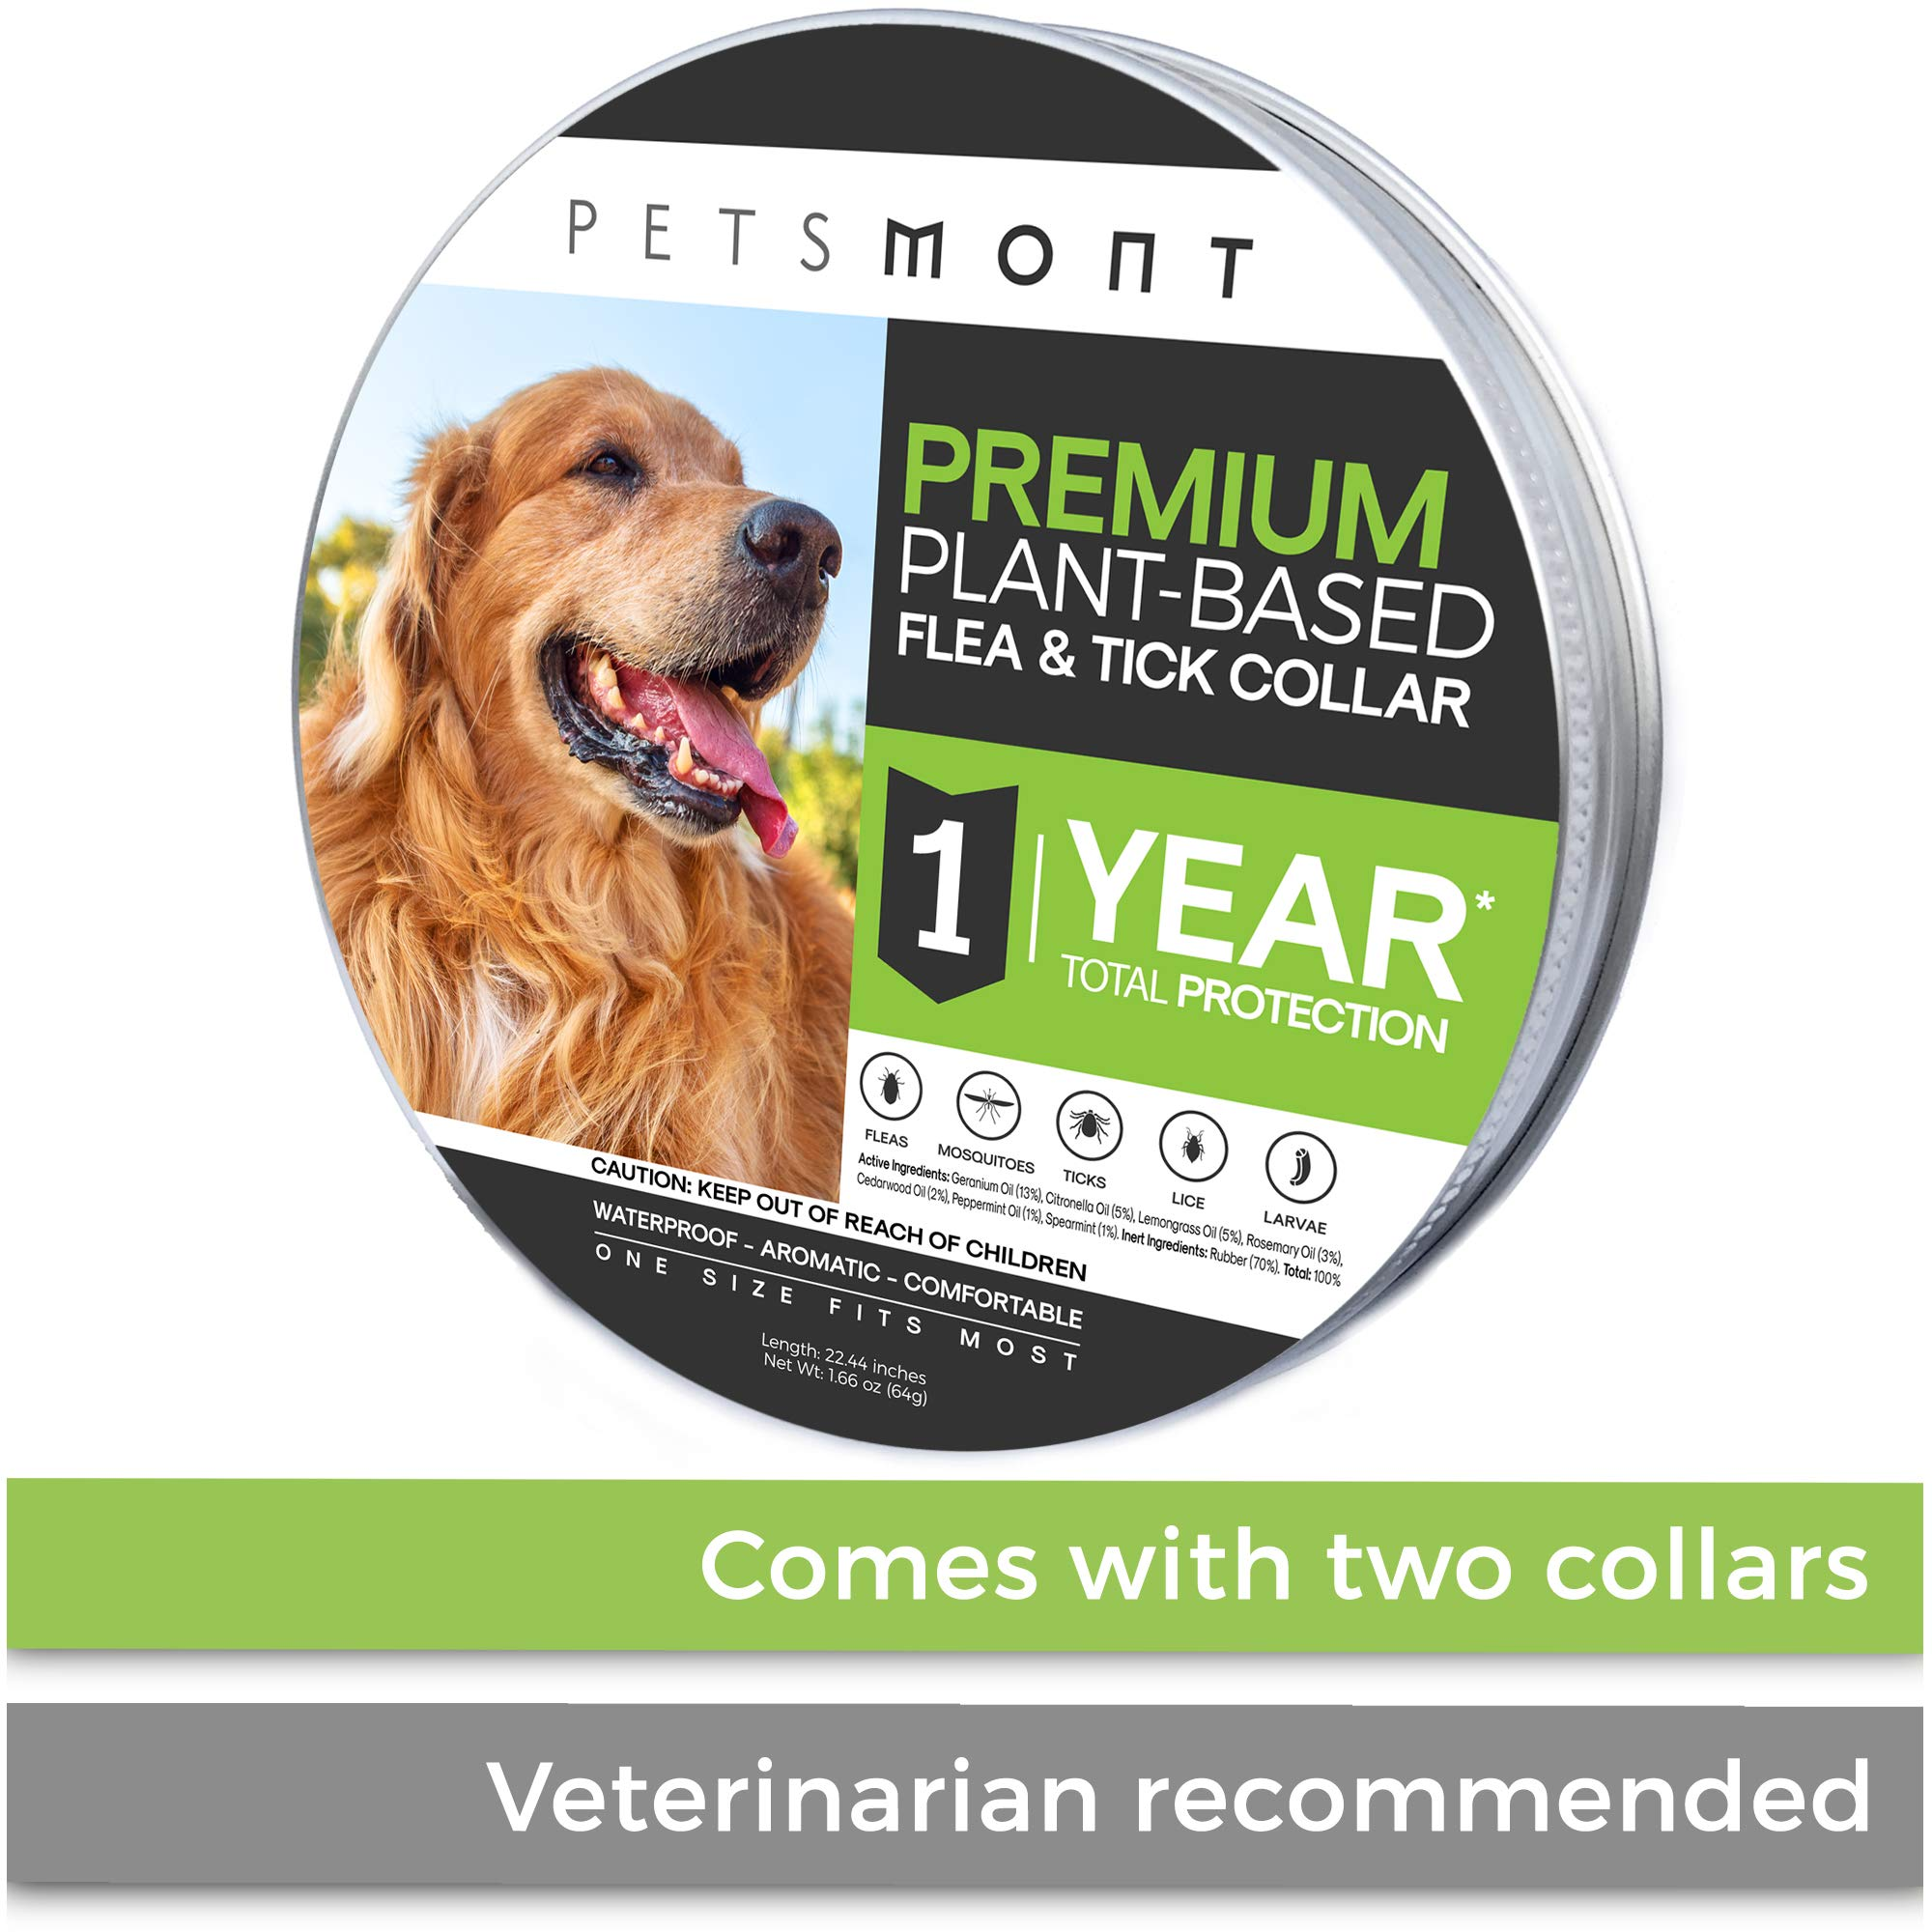 Petsmont Flea Collar for Dogs, Tick Collar for Dogs, Flea and Tick Collar for Dogs, Dog Flea Collar, Unique Plant Based Formula, Small to Extra Large, 1 Year Protection, Stone Gray Color by Petsmont